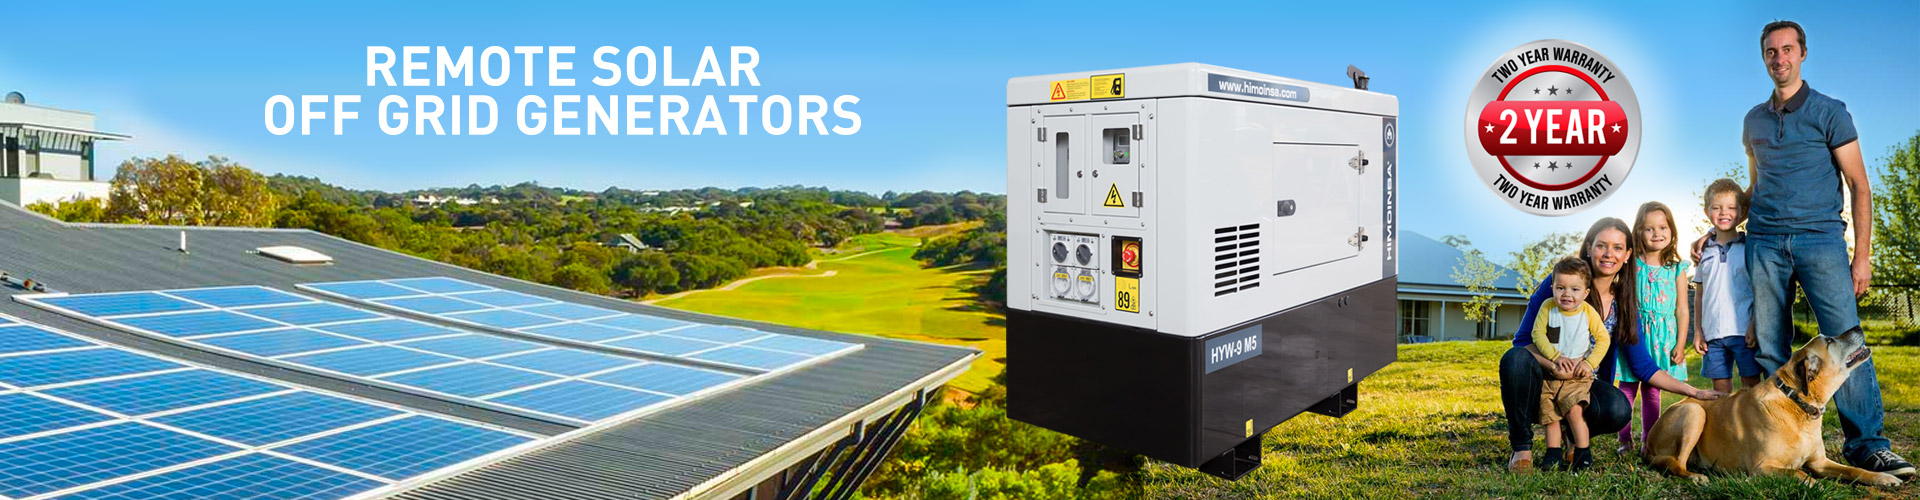 Remote Solar Off Grid Generators